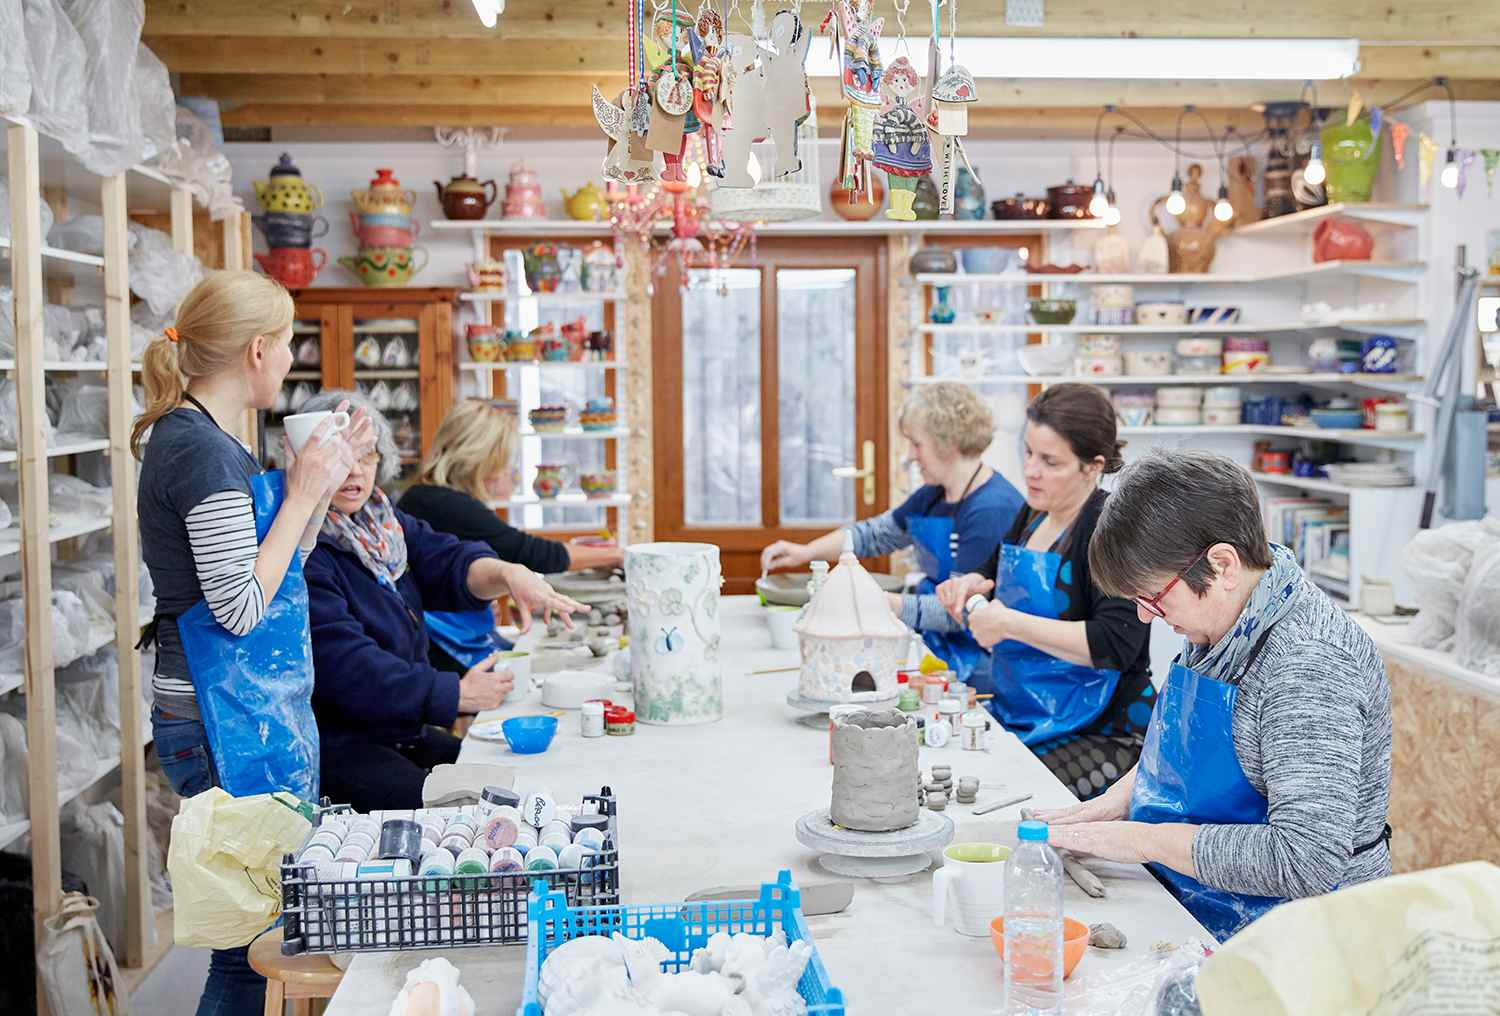 A group of people seated at a workbench in a pottery workshop.